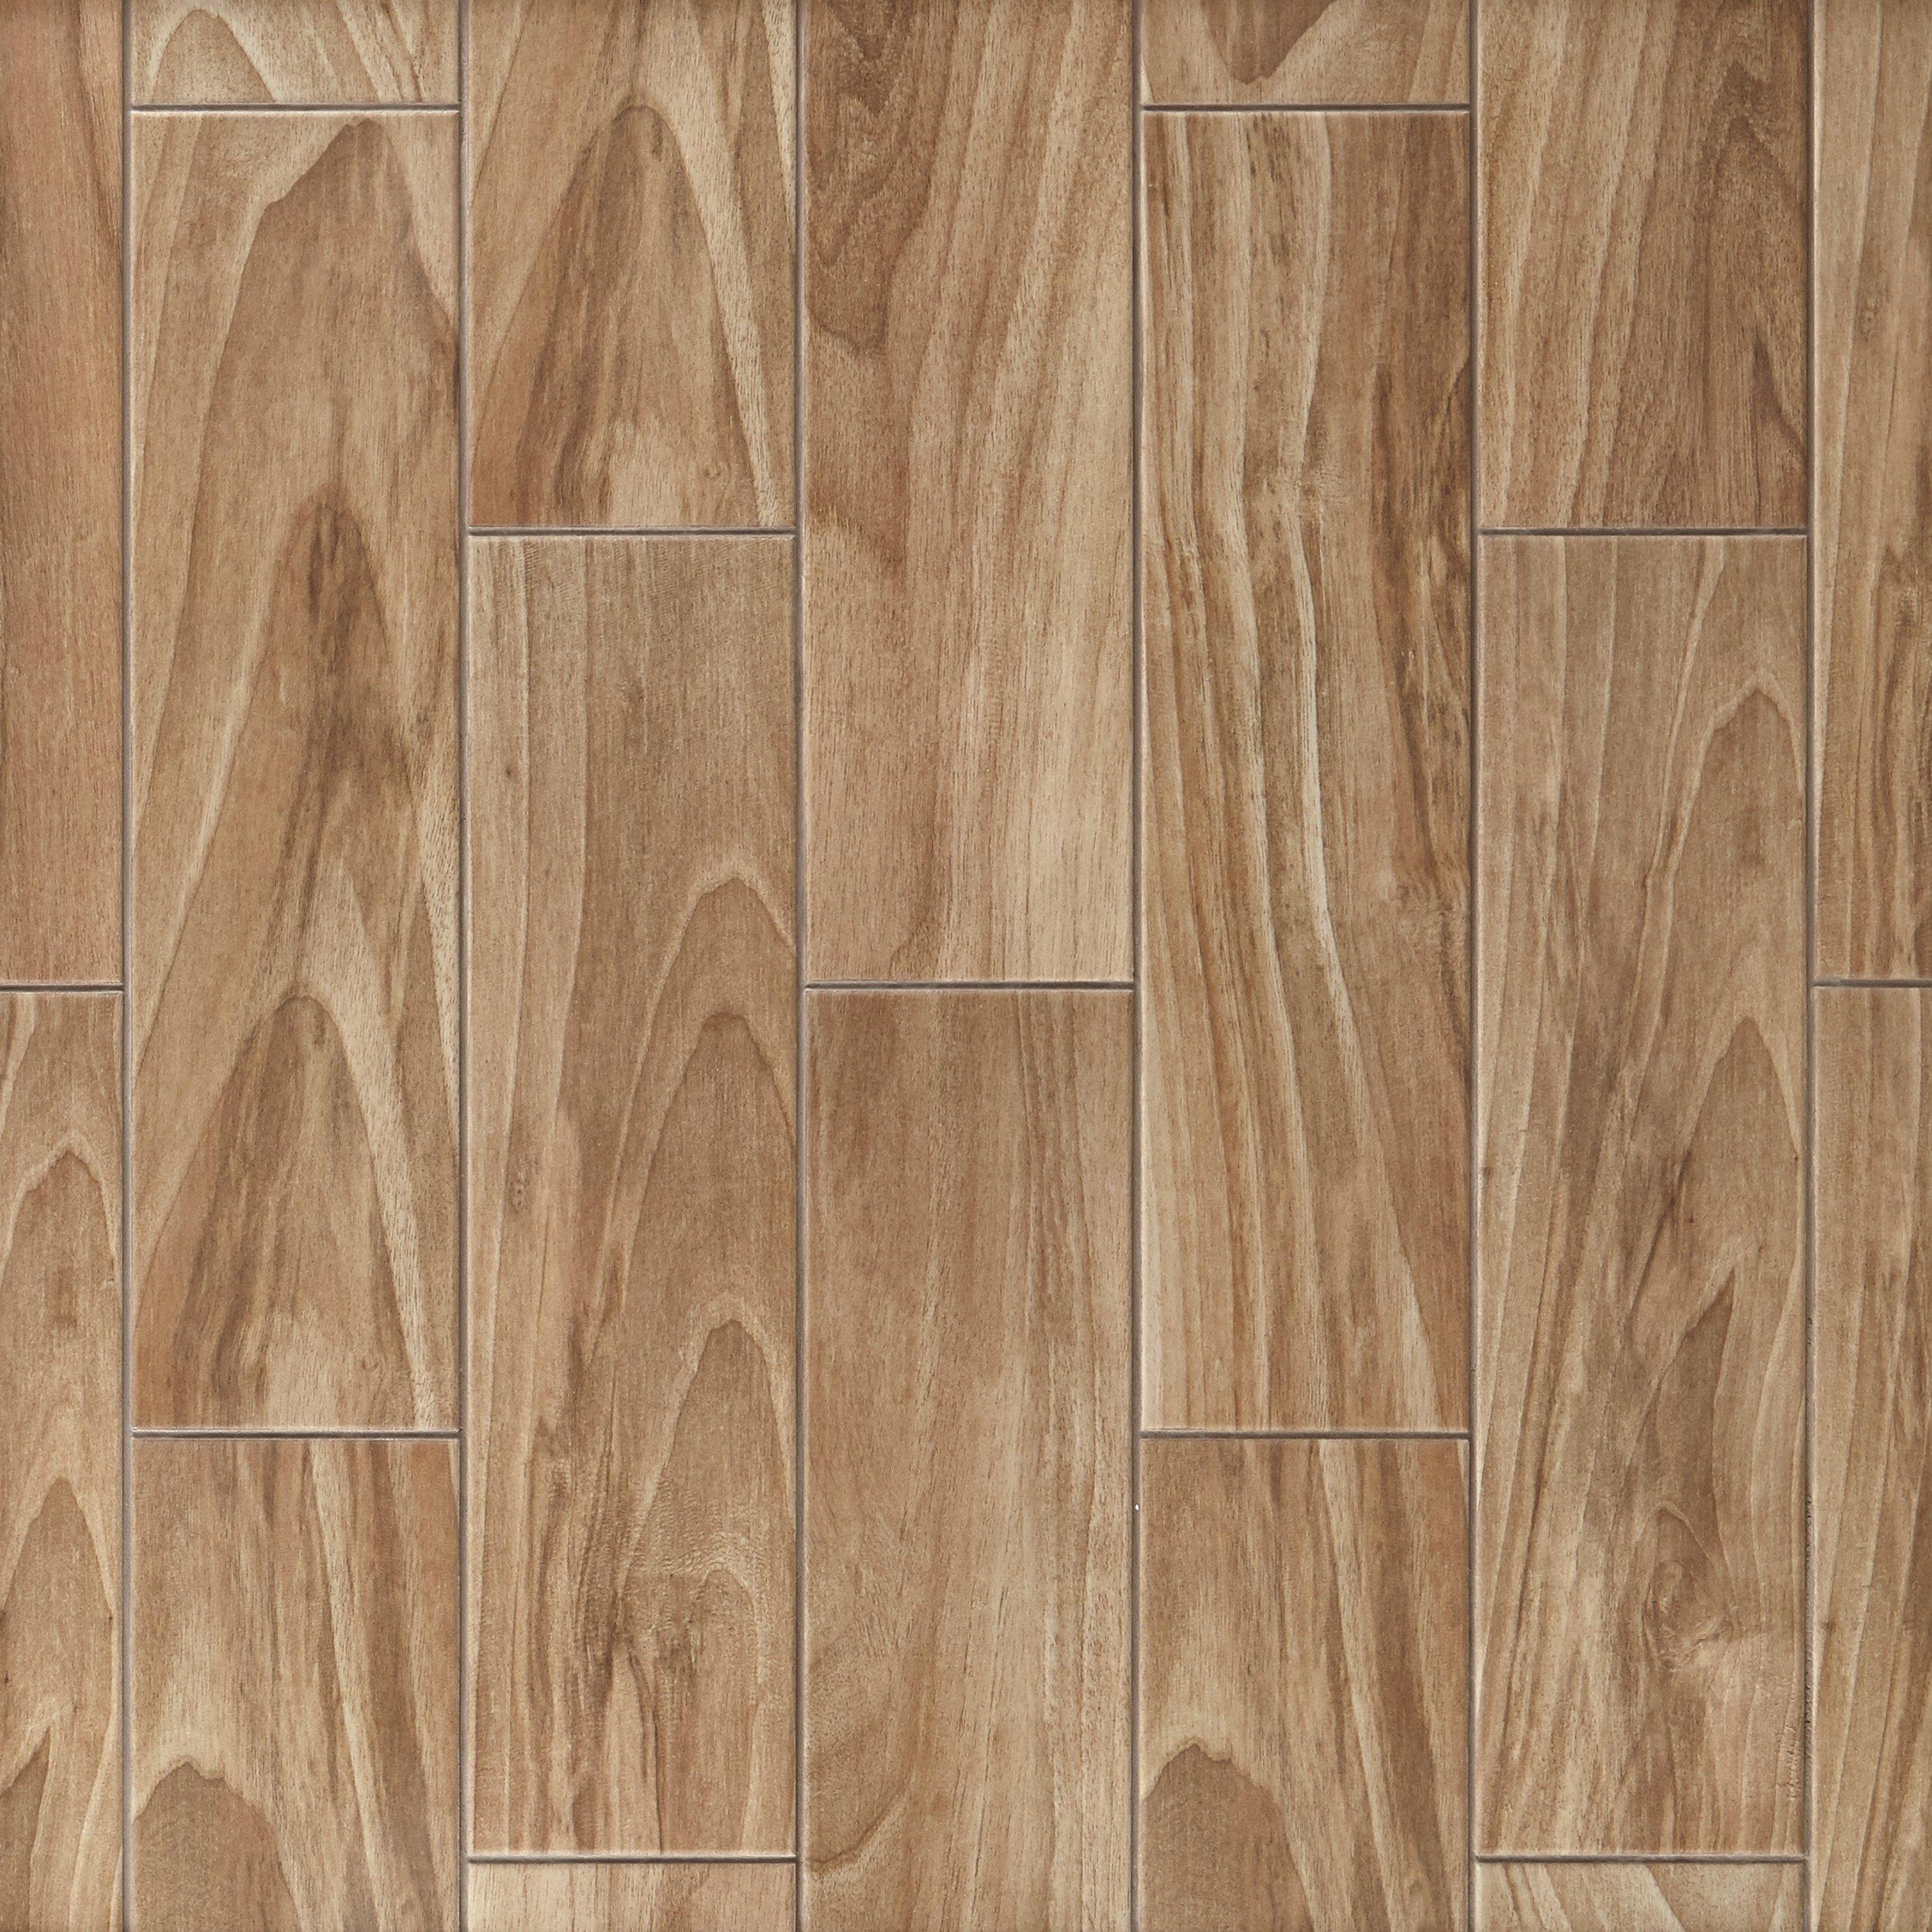 Wood Shower Floor Wood Look Tile Floor And Decor